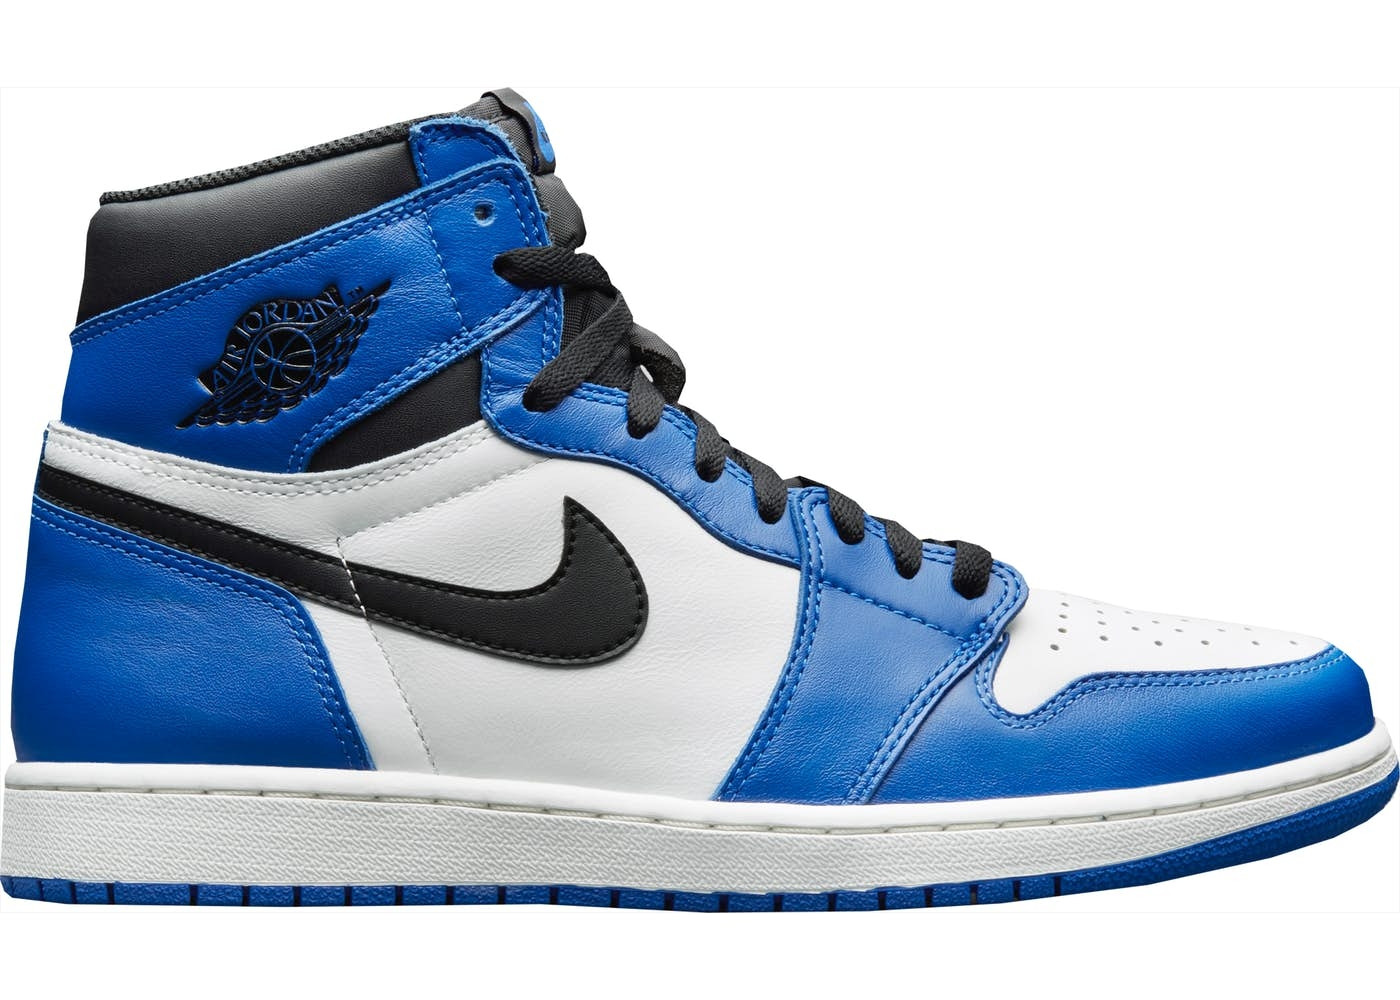 Jordan 1 retro game royal new arrivals for Jordan royal 1 shirt